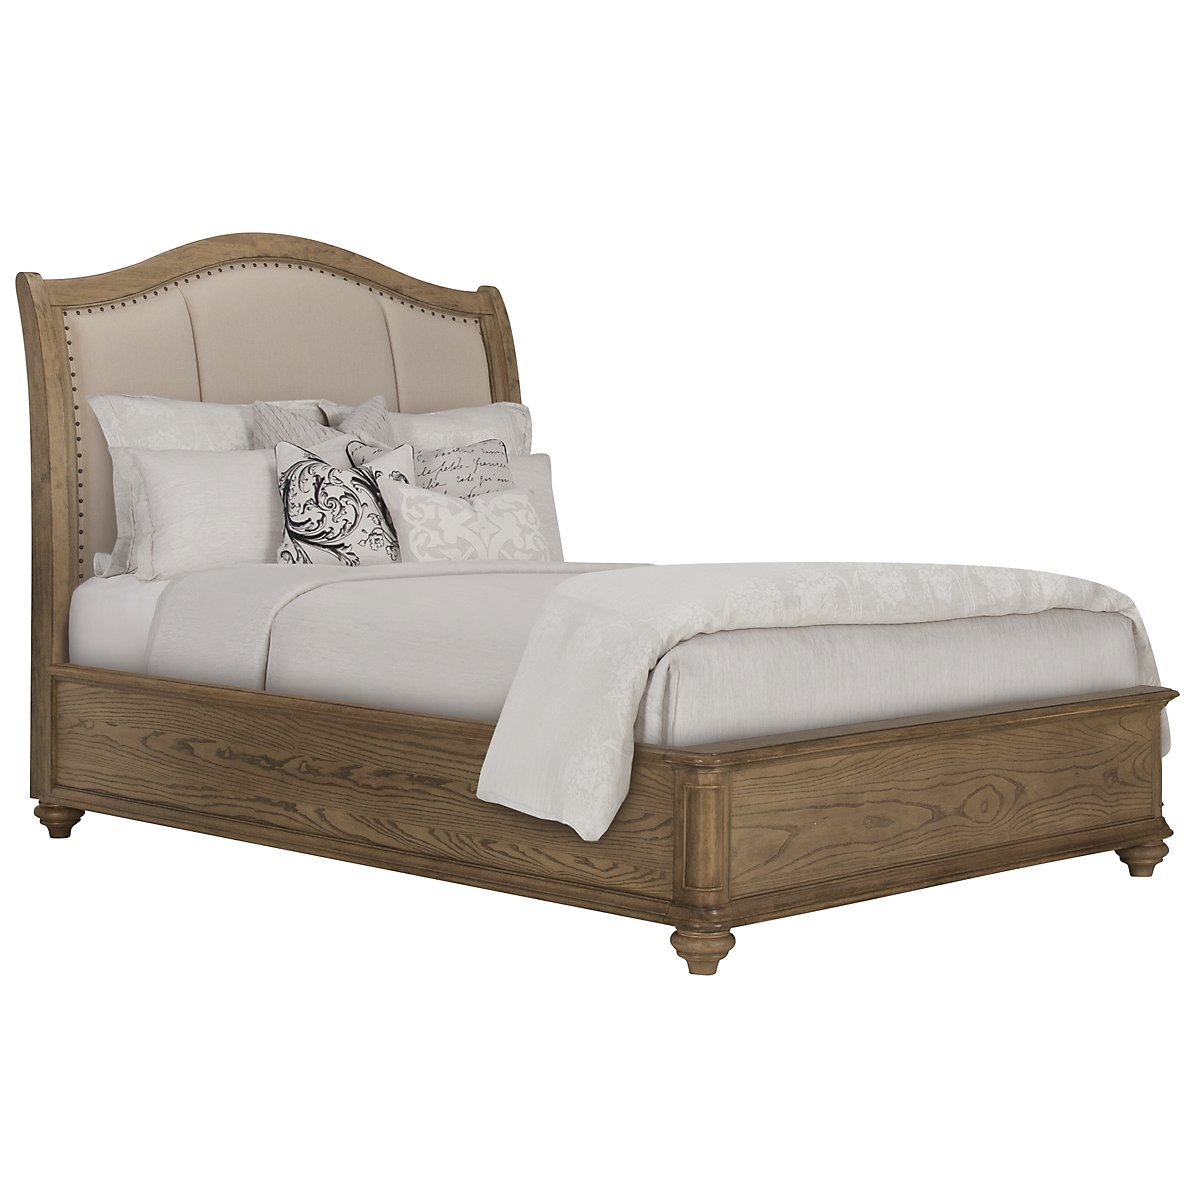 Coventry Light Tone Upholstered Platform Bed